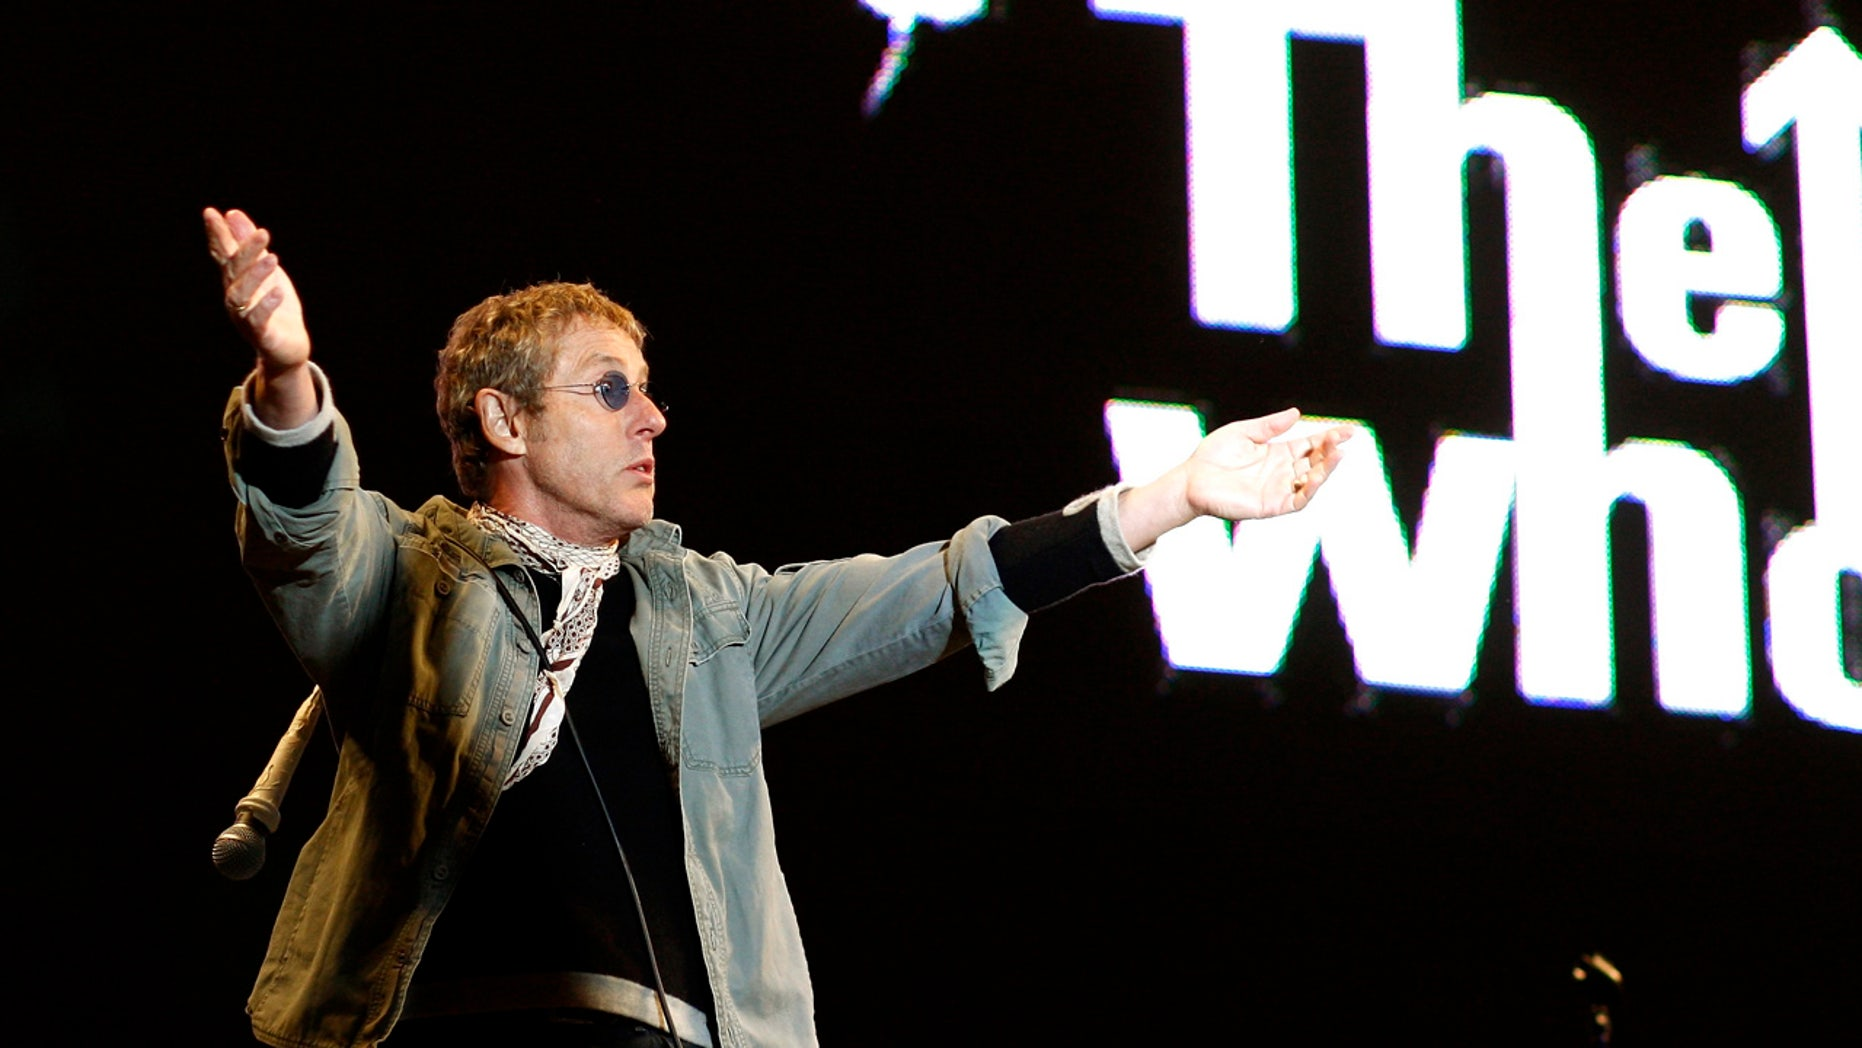 Lead singer Roger Daltrey told fans at a Madison Square Garden Who concert Monday that he is allergic to marijuana.